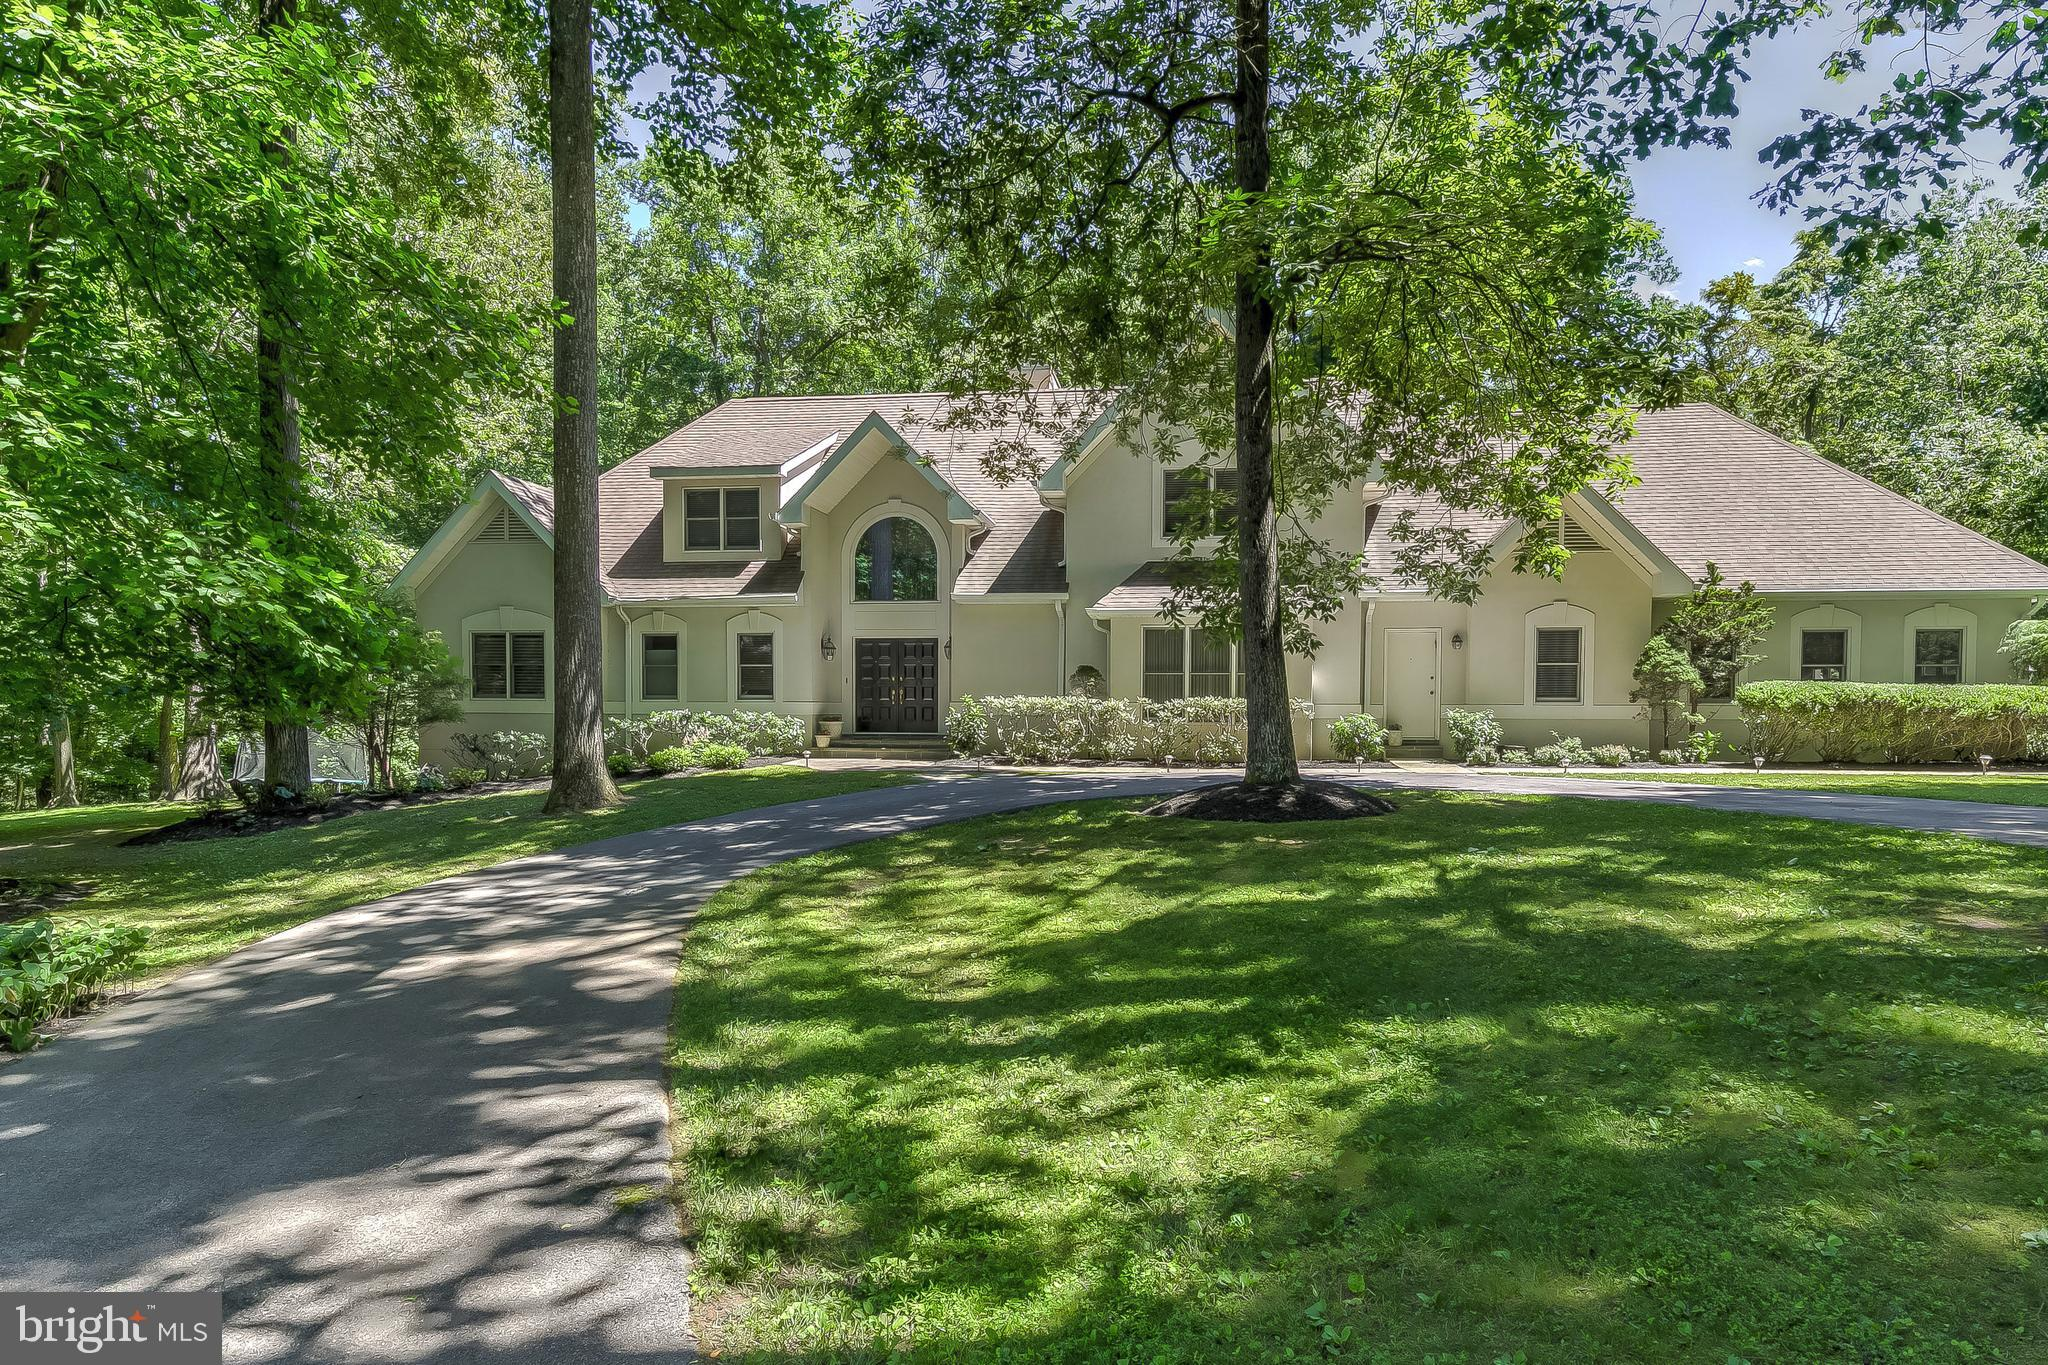 12635 WATERSPOUT COURT, OWINGS MILLS, MD 21117